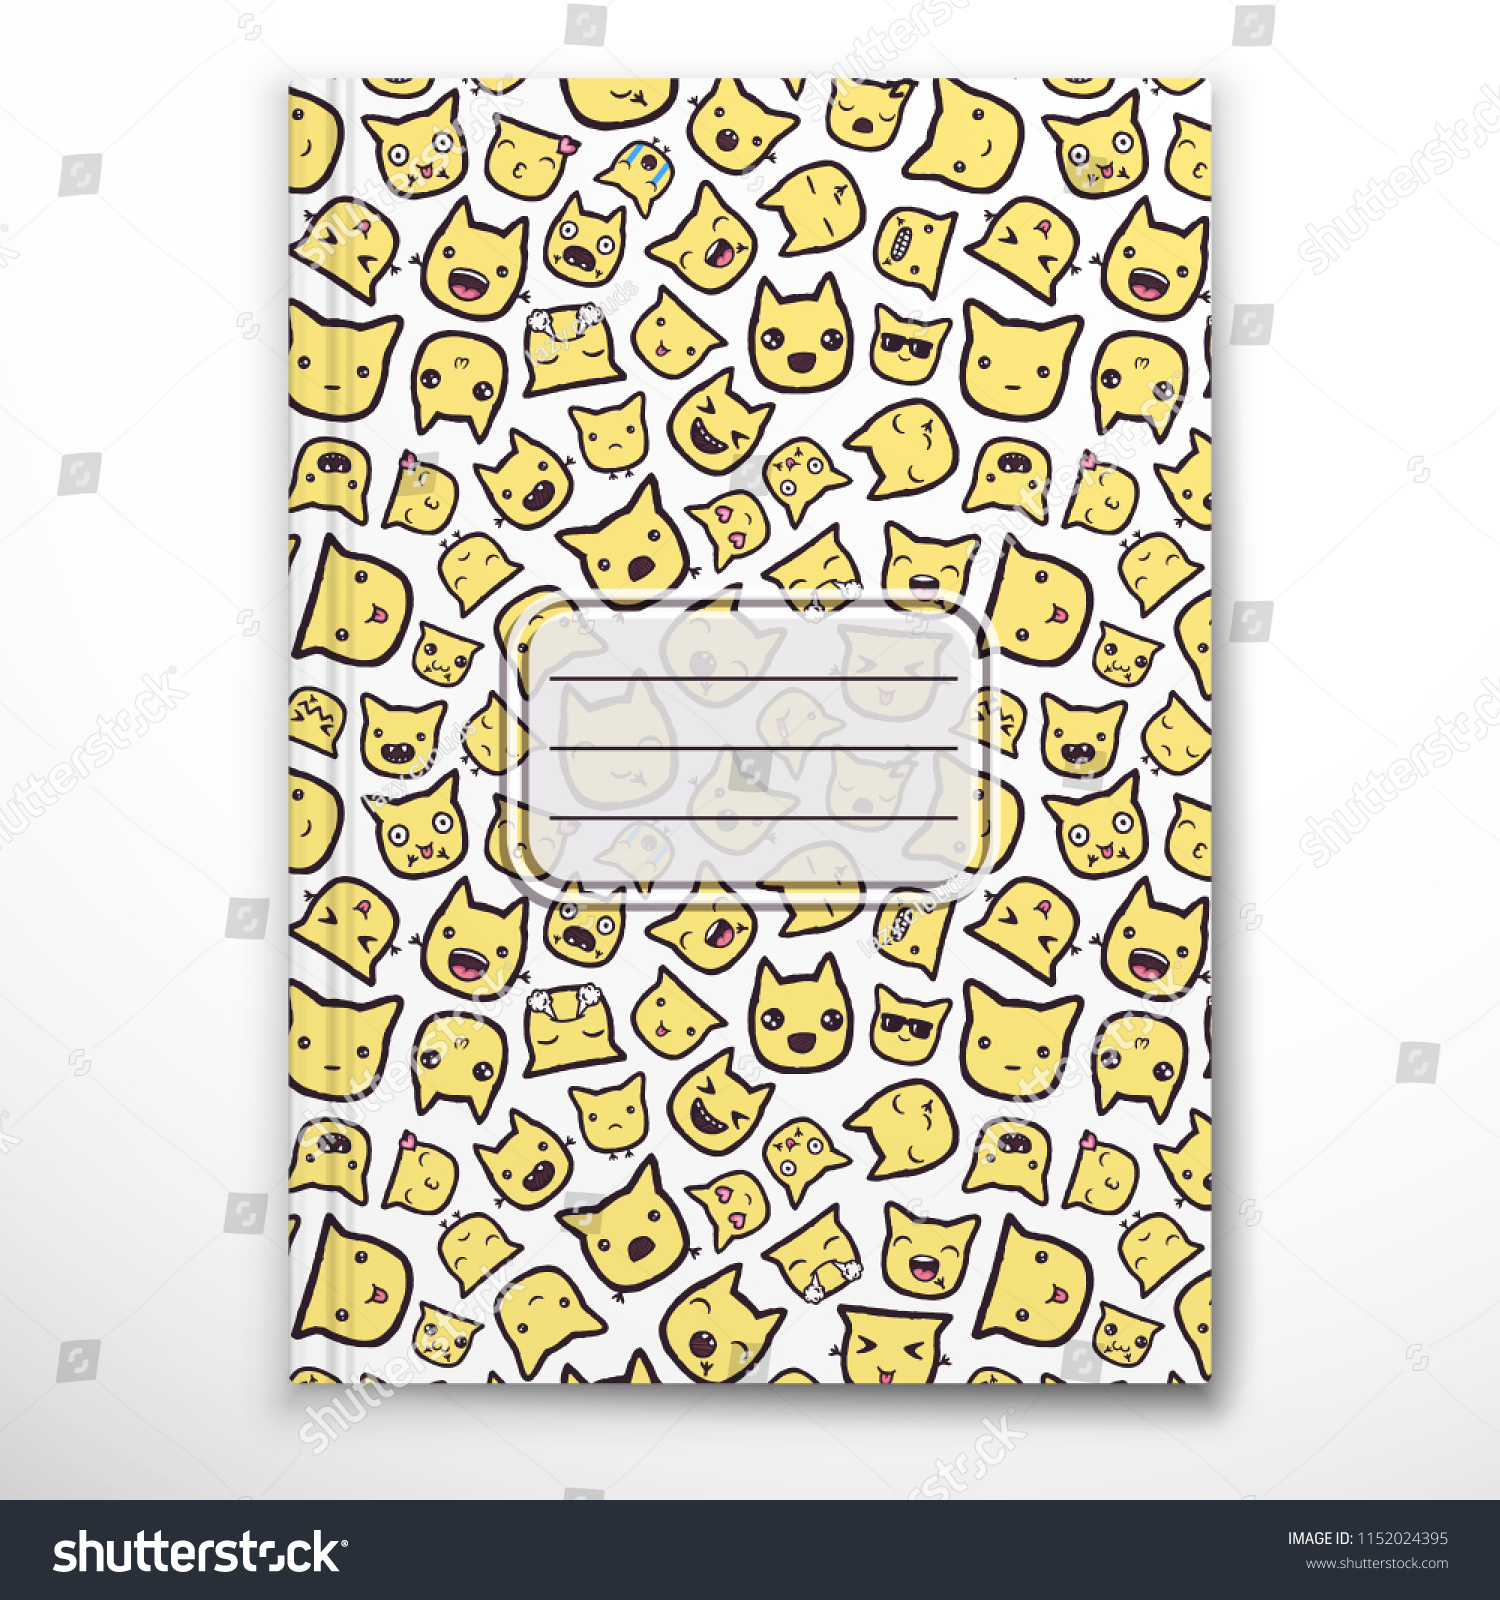 Notebook Cover Template Emoji Handdrawn Doodles Stock Vector